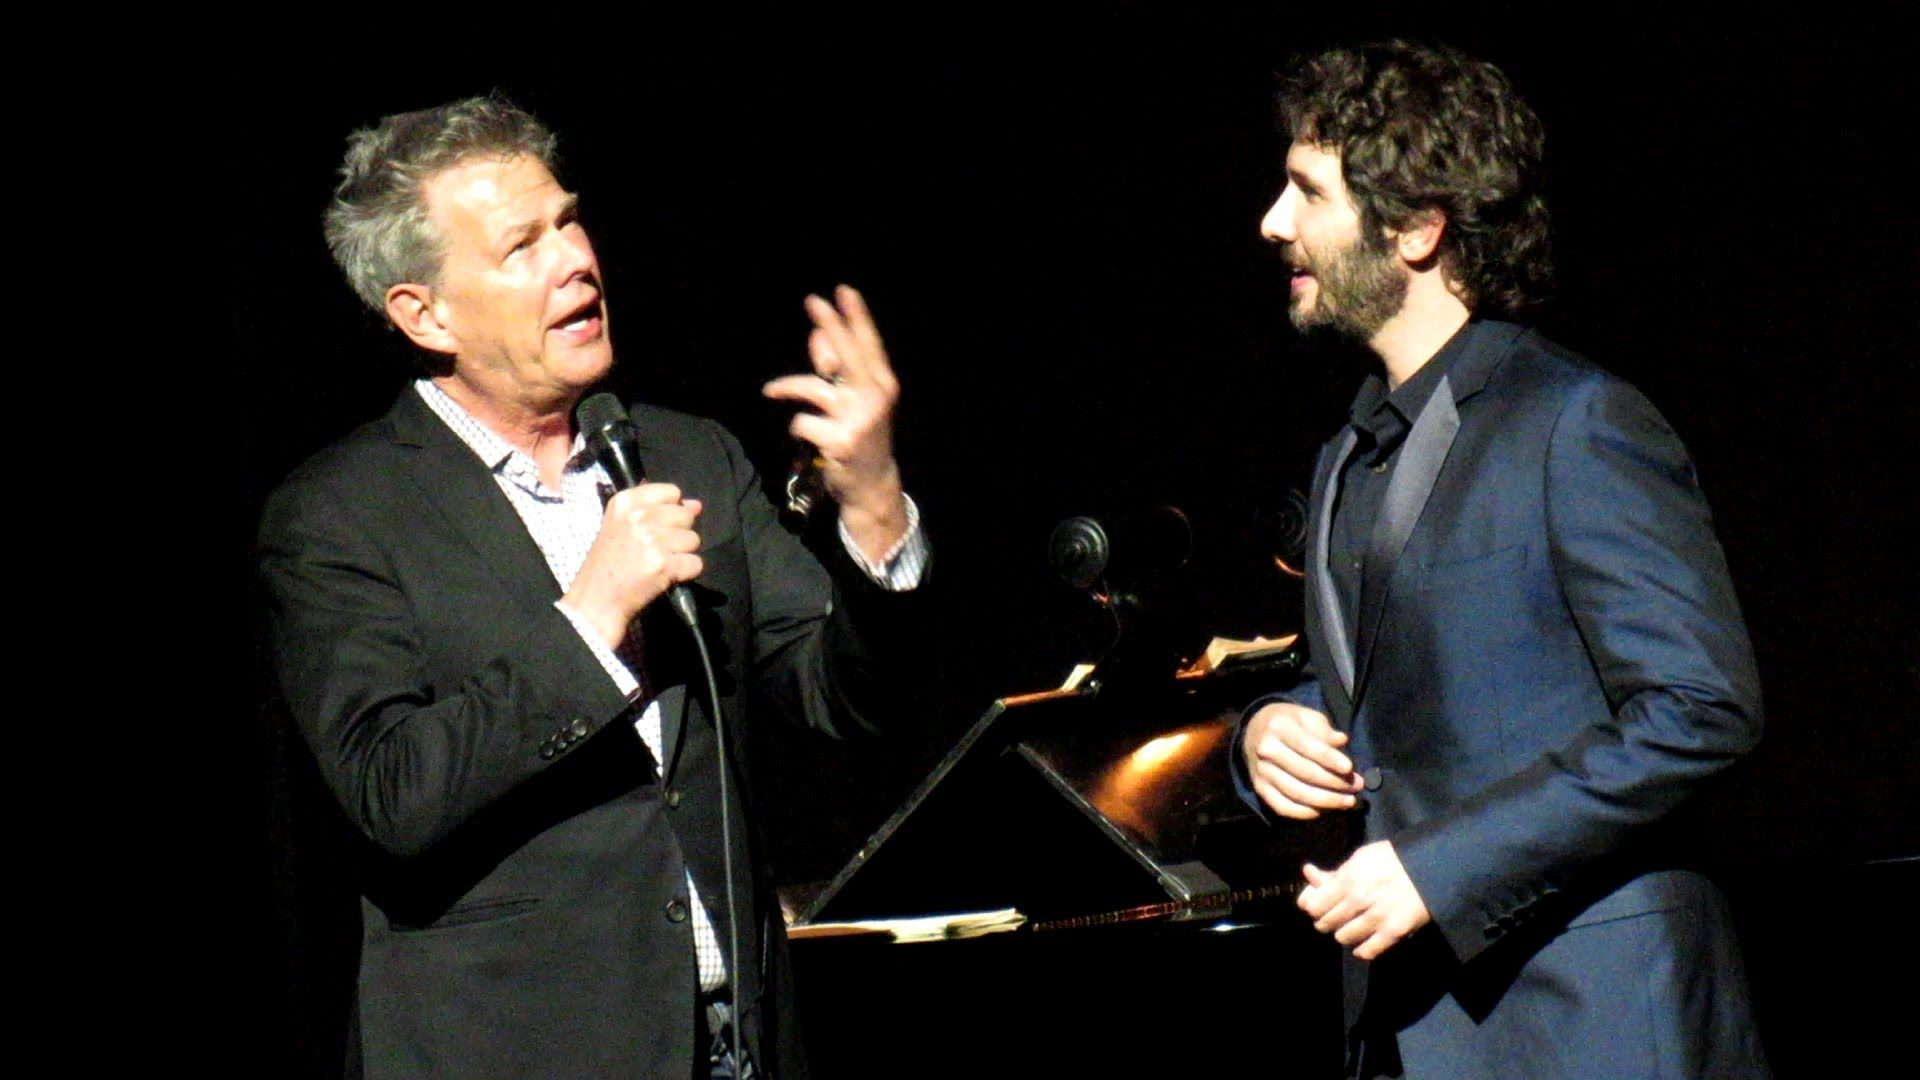 Josh Groban With David Foster And Lena Hall All I Ask Of You Live The Fosters Youtube The Great Comet